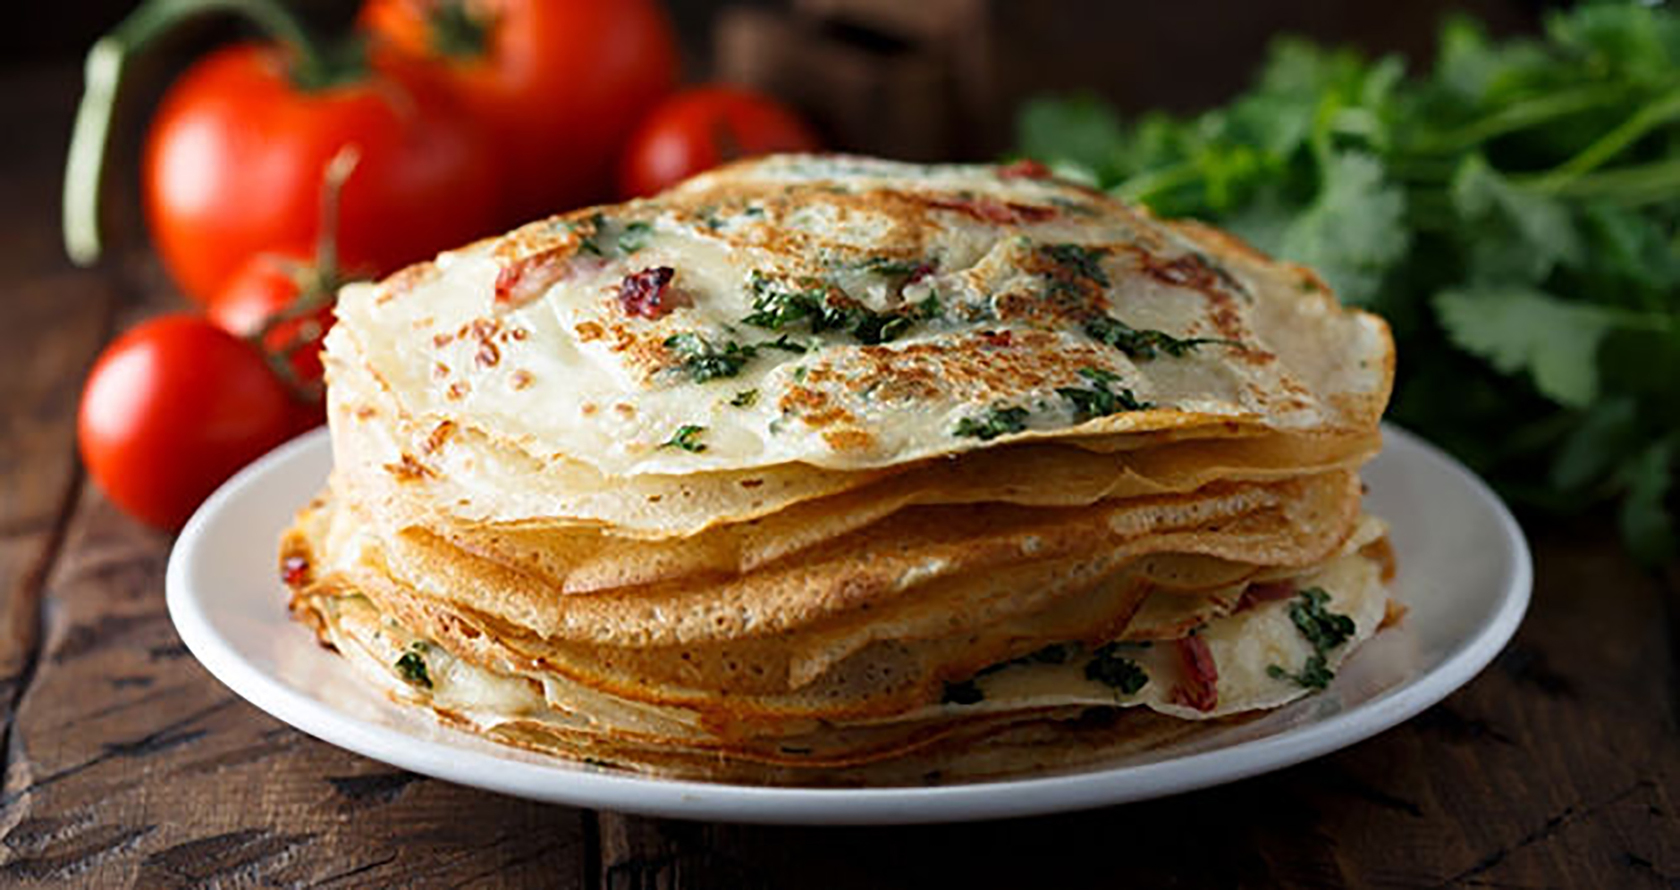 Directions:  Mix chickpea flour with water and egg Add the rest of the ingredients Cook pancakes on an iron skillet until light brown Serve with chutney or eat plain